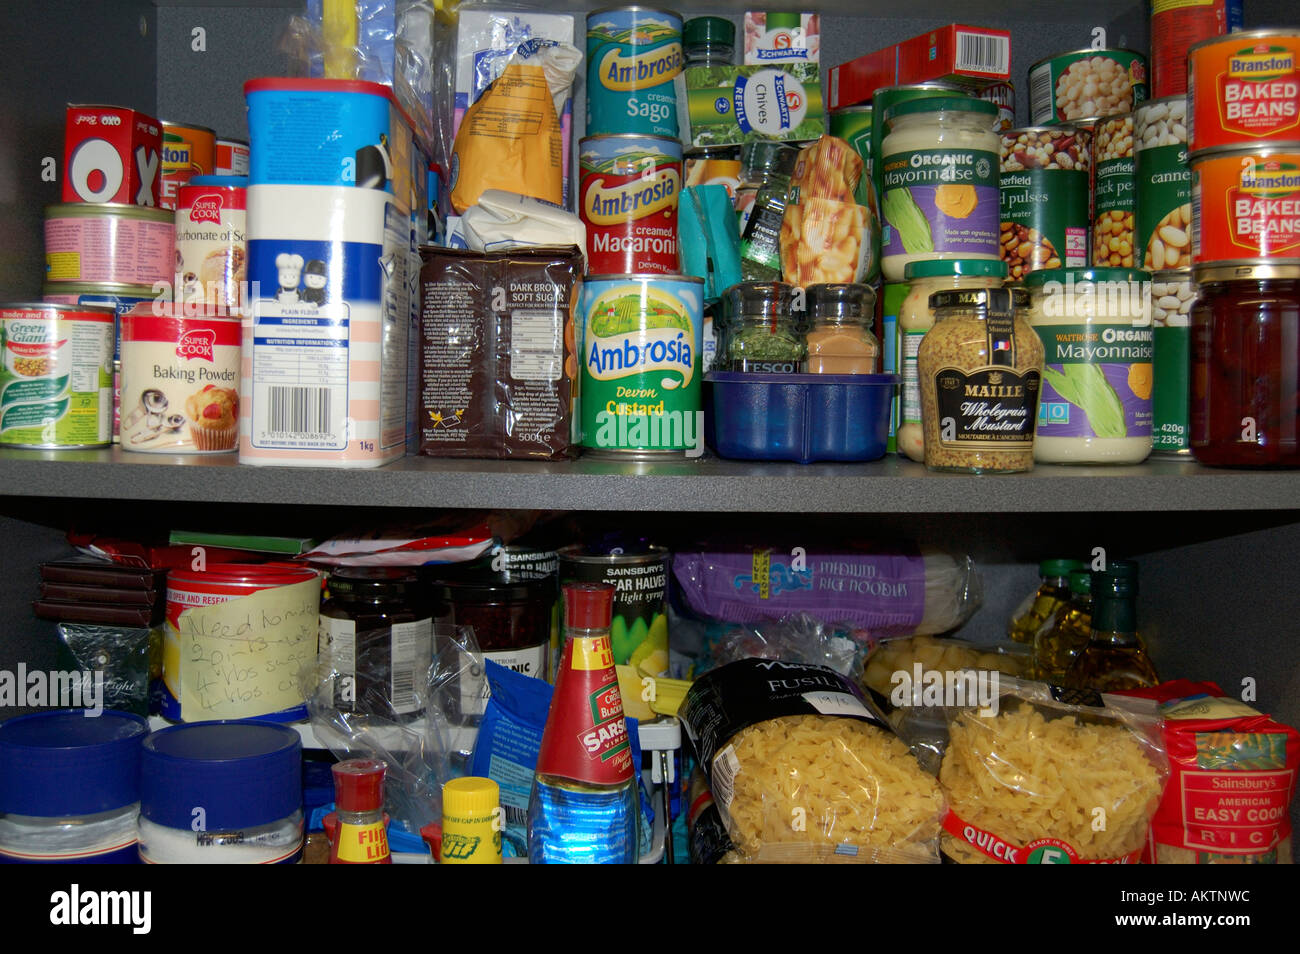 Food Pantry Ltd